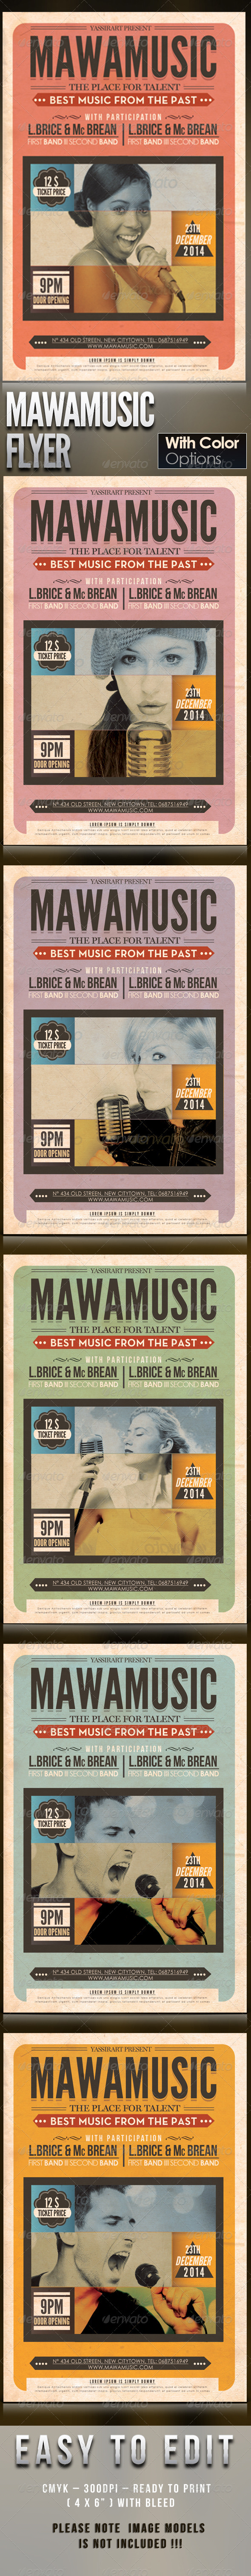 Mawamusic Flyer Template - Clubs & Parties Events